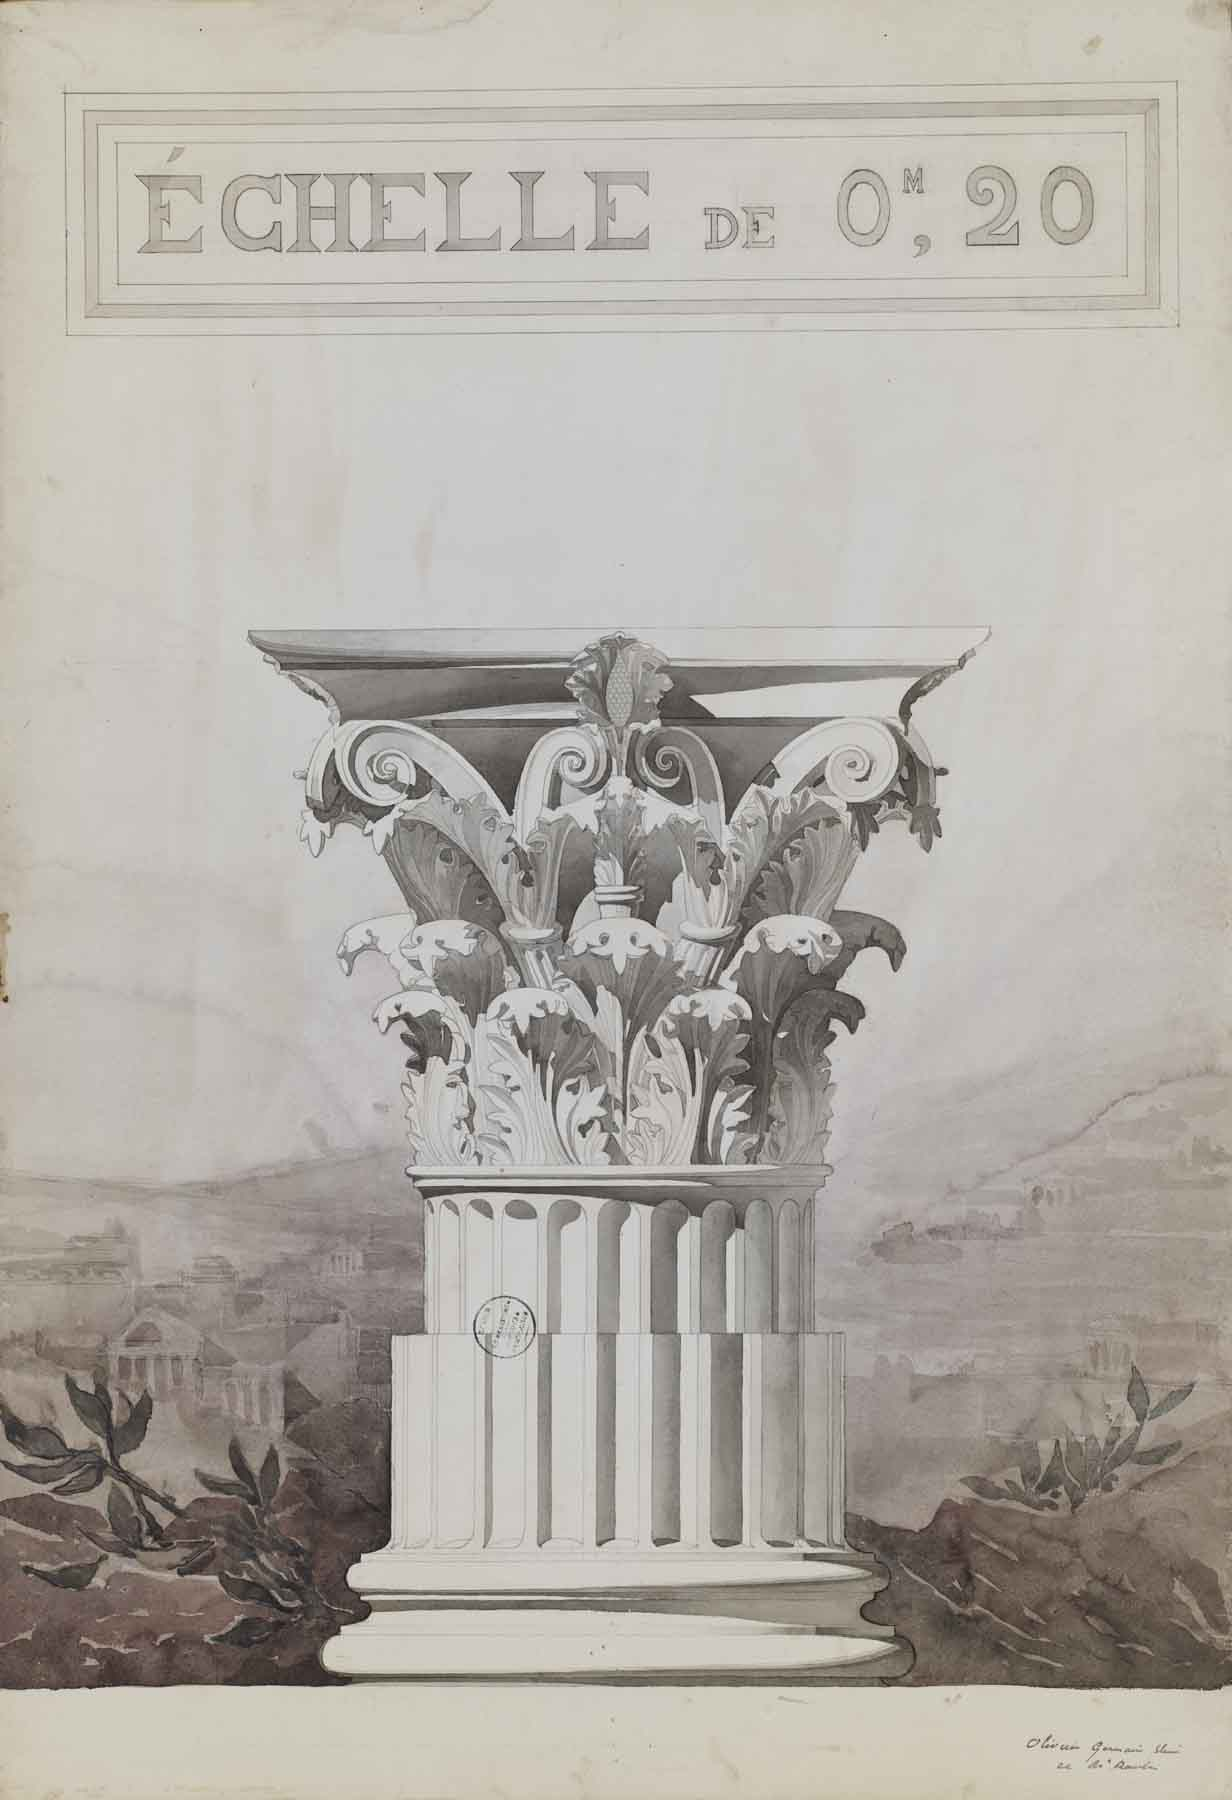 """Jules-Germain Olivier, Study of a Corinthian Column Capital,  1890-1900, pencil and watercolor on paper,43 3/4 x 31 7/8"""" framed"""